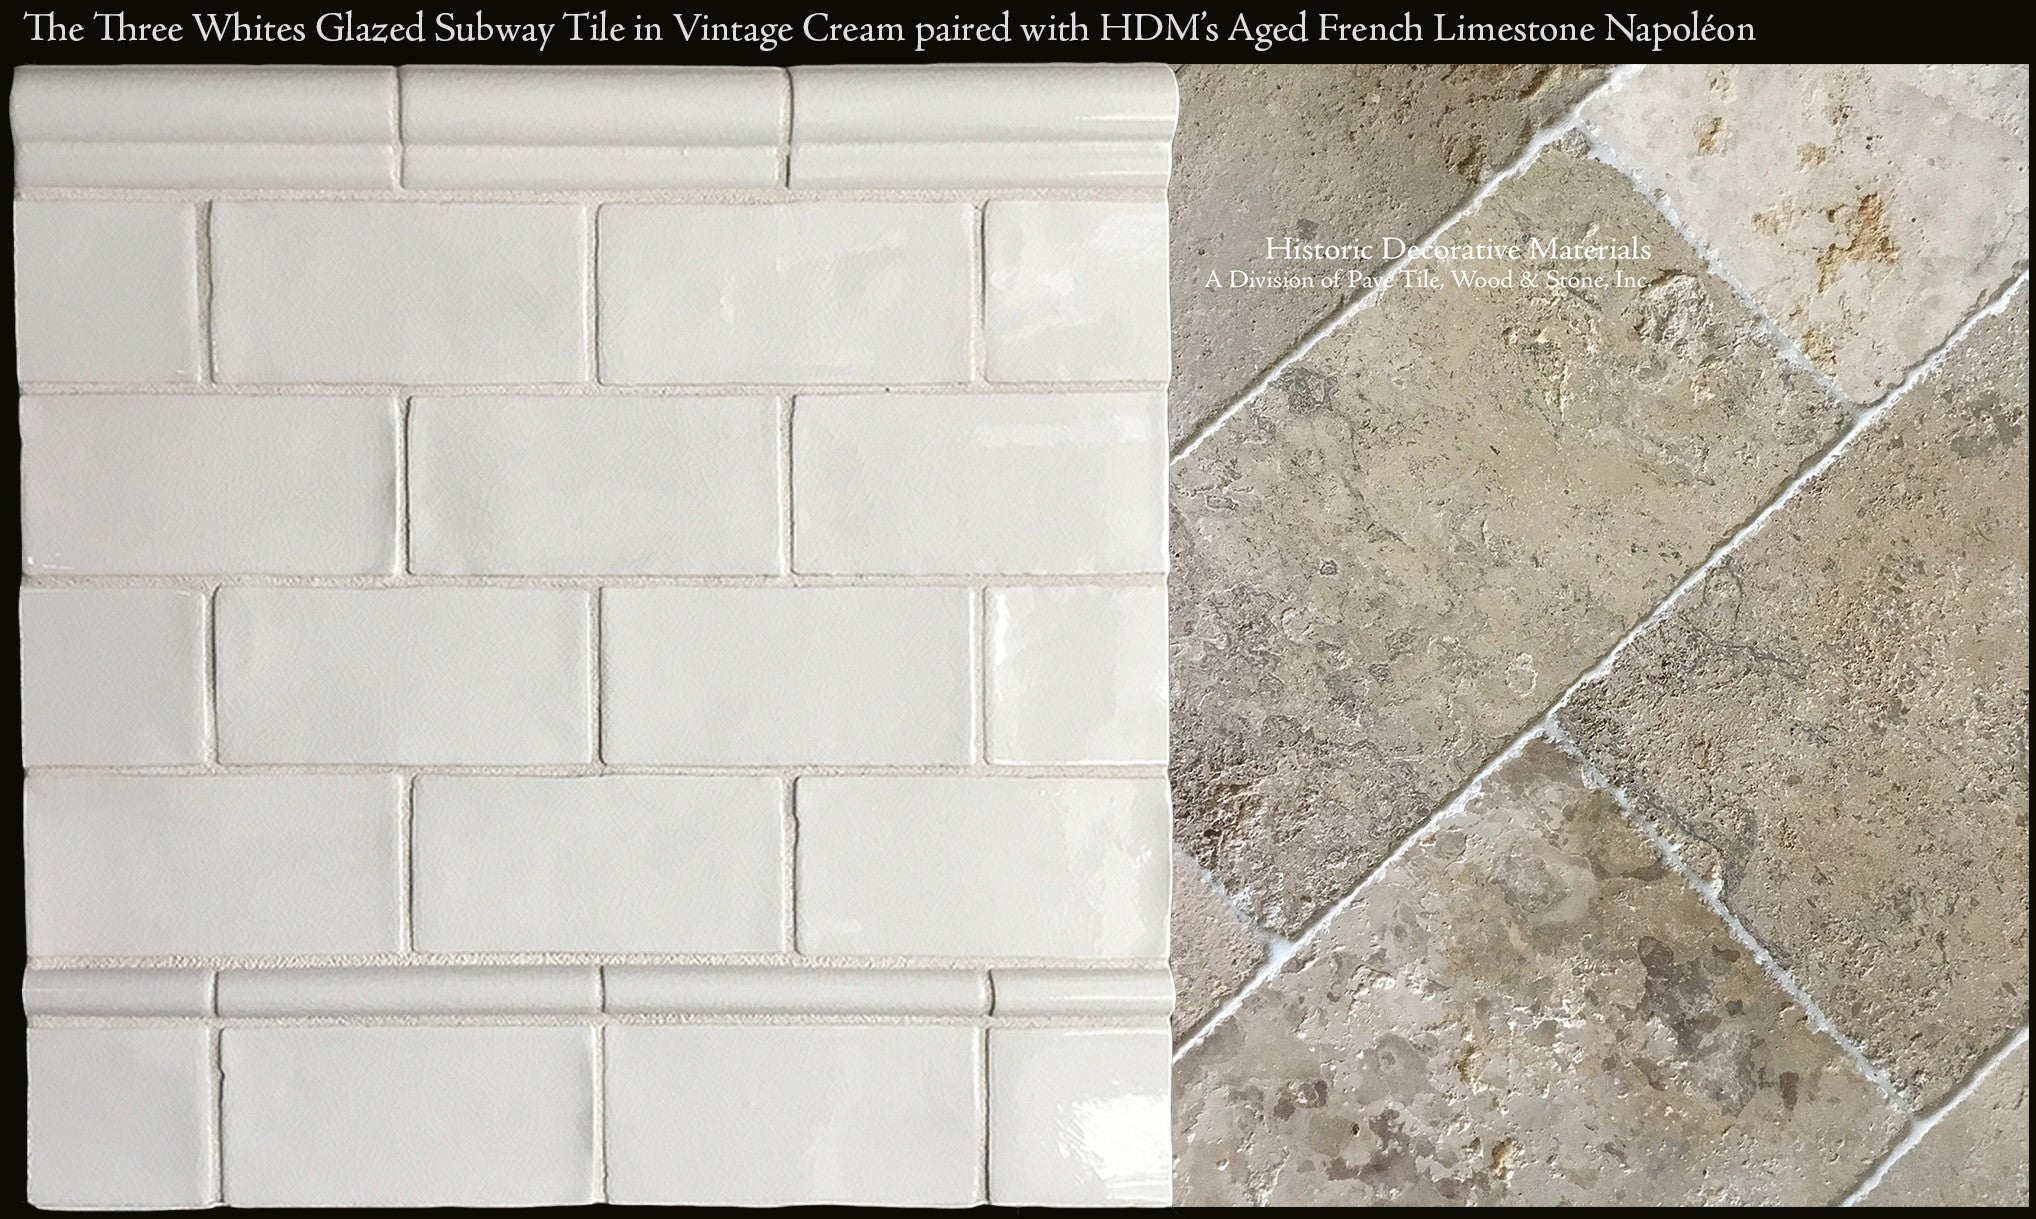 Ceramic glazed 3 x 6 subway tiles for kitchen back splash and three whites subway tile in vintage white beautifully paired with aged french limestone napoleon dailygadgetfo Images